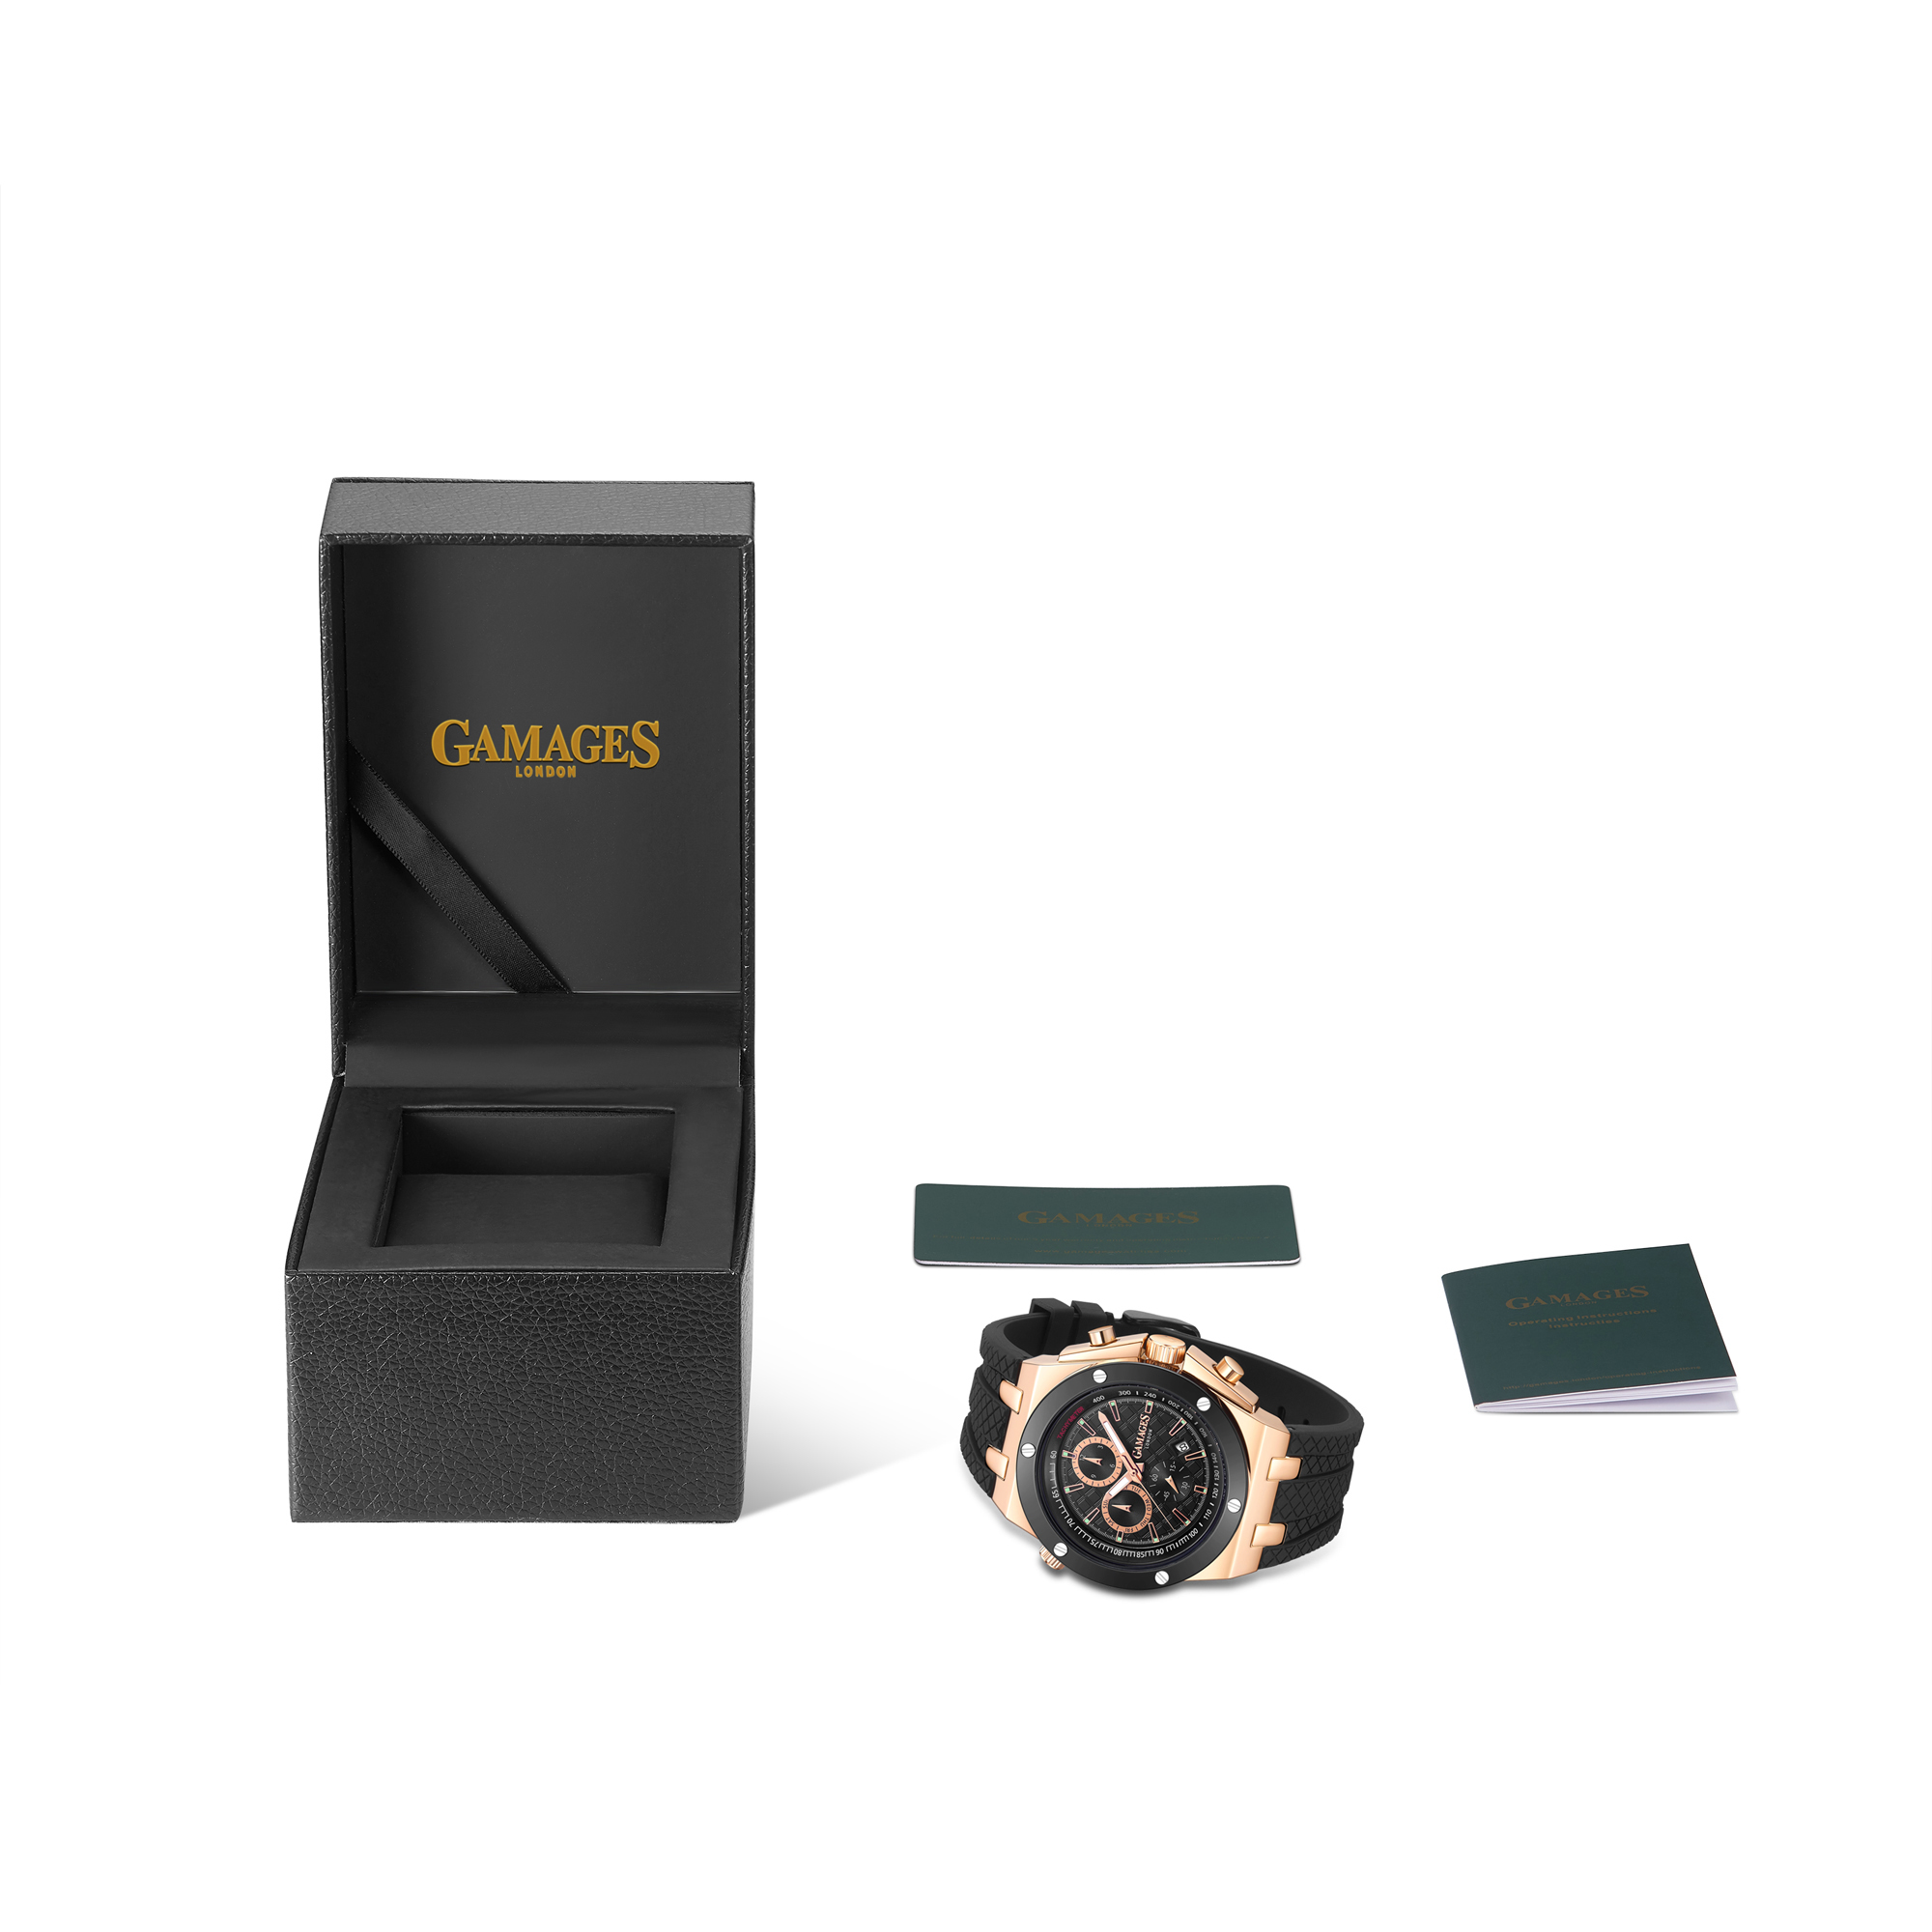 Limited Edition Hand Assembled GAMAGES Militant Automatic Rose – 5 Year Warranty & Free Delivery - Image 2 of 5